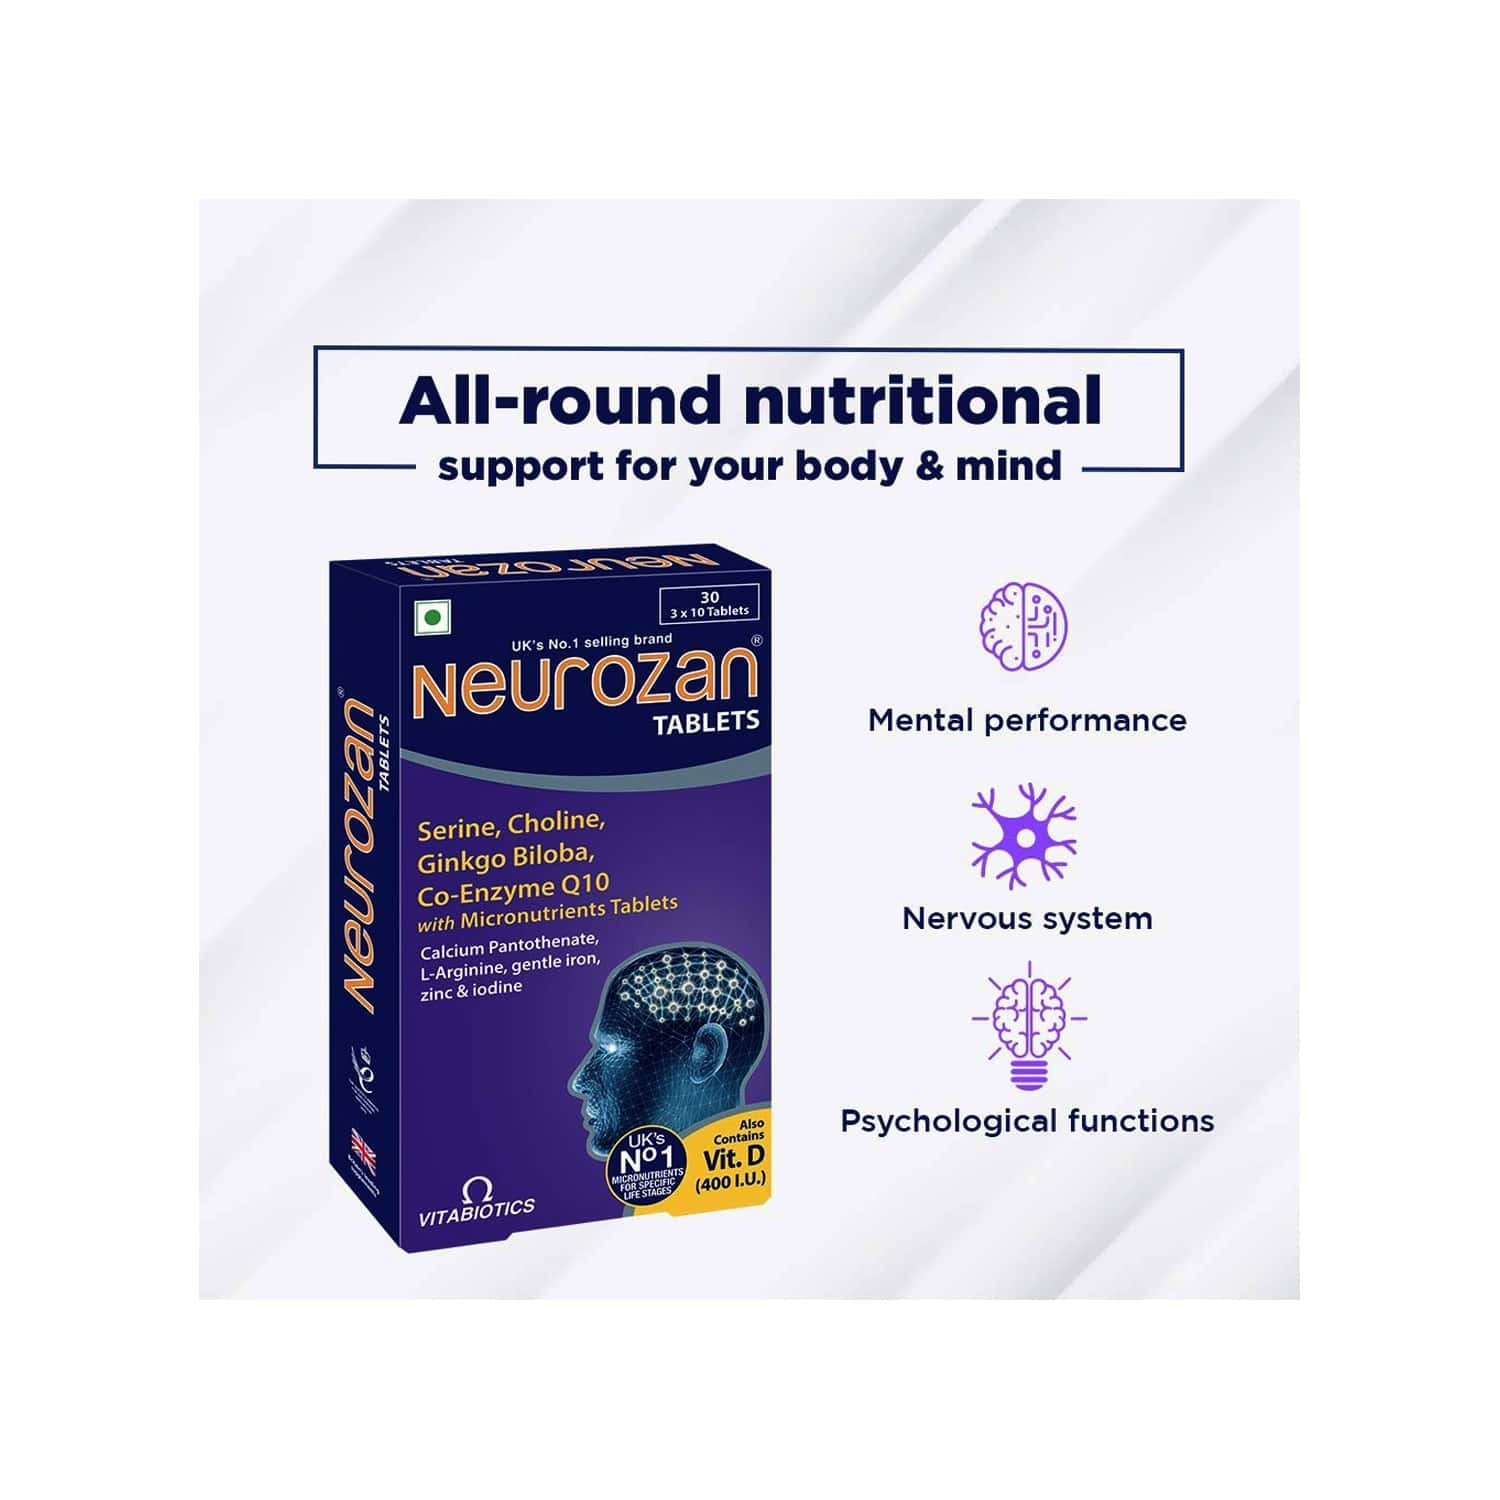 Neurozan - Health Supplements (23 Micronutrients Including Botanical Extract Of Ginkgo Bilobo) With Wellman 30 Tablet Free